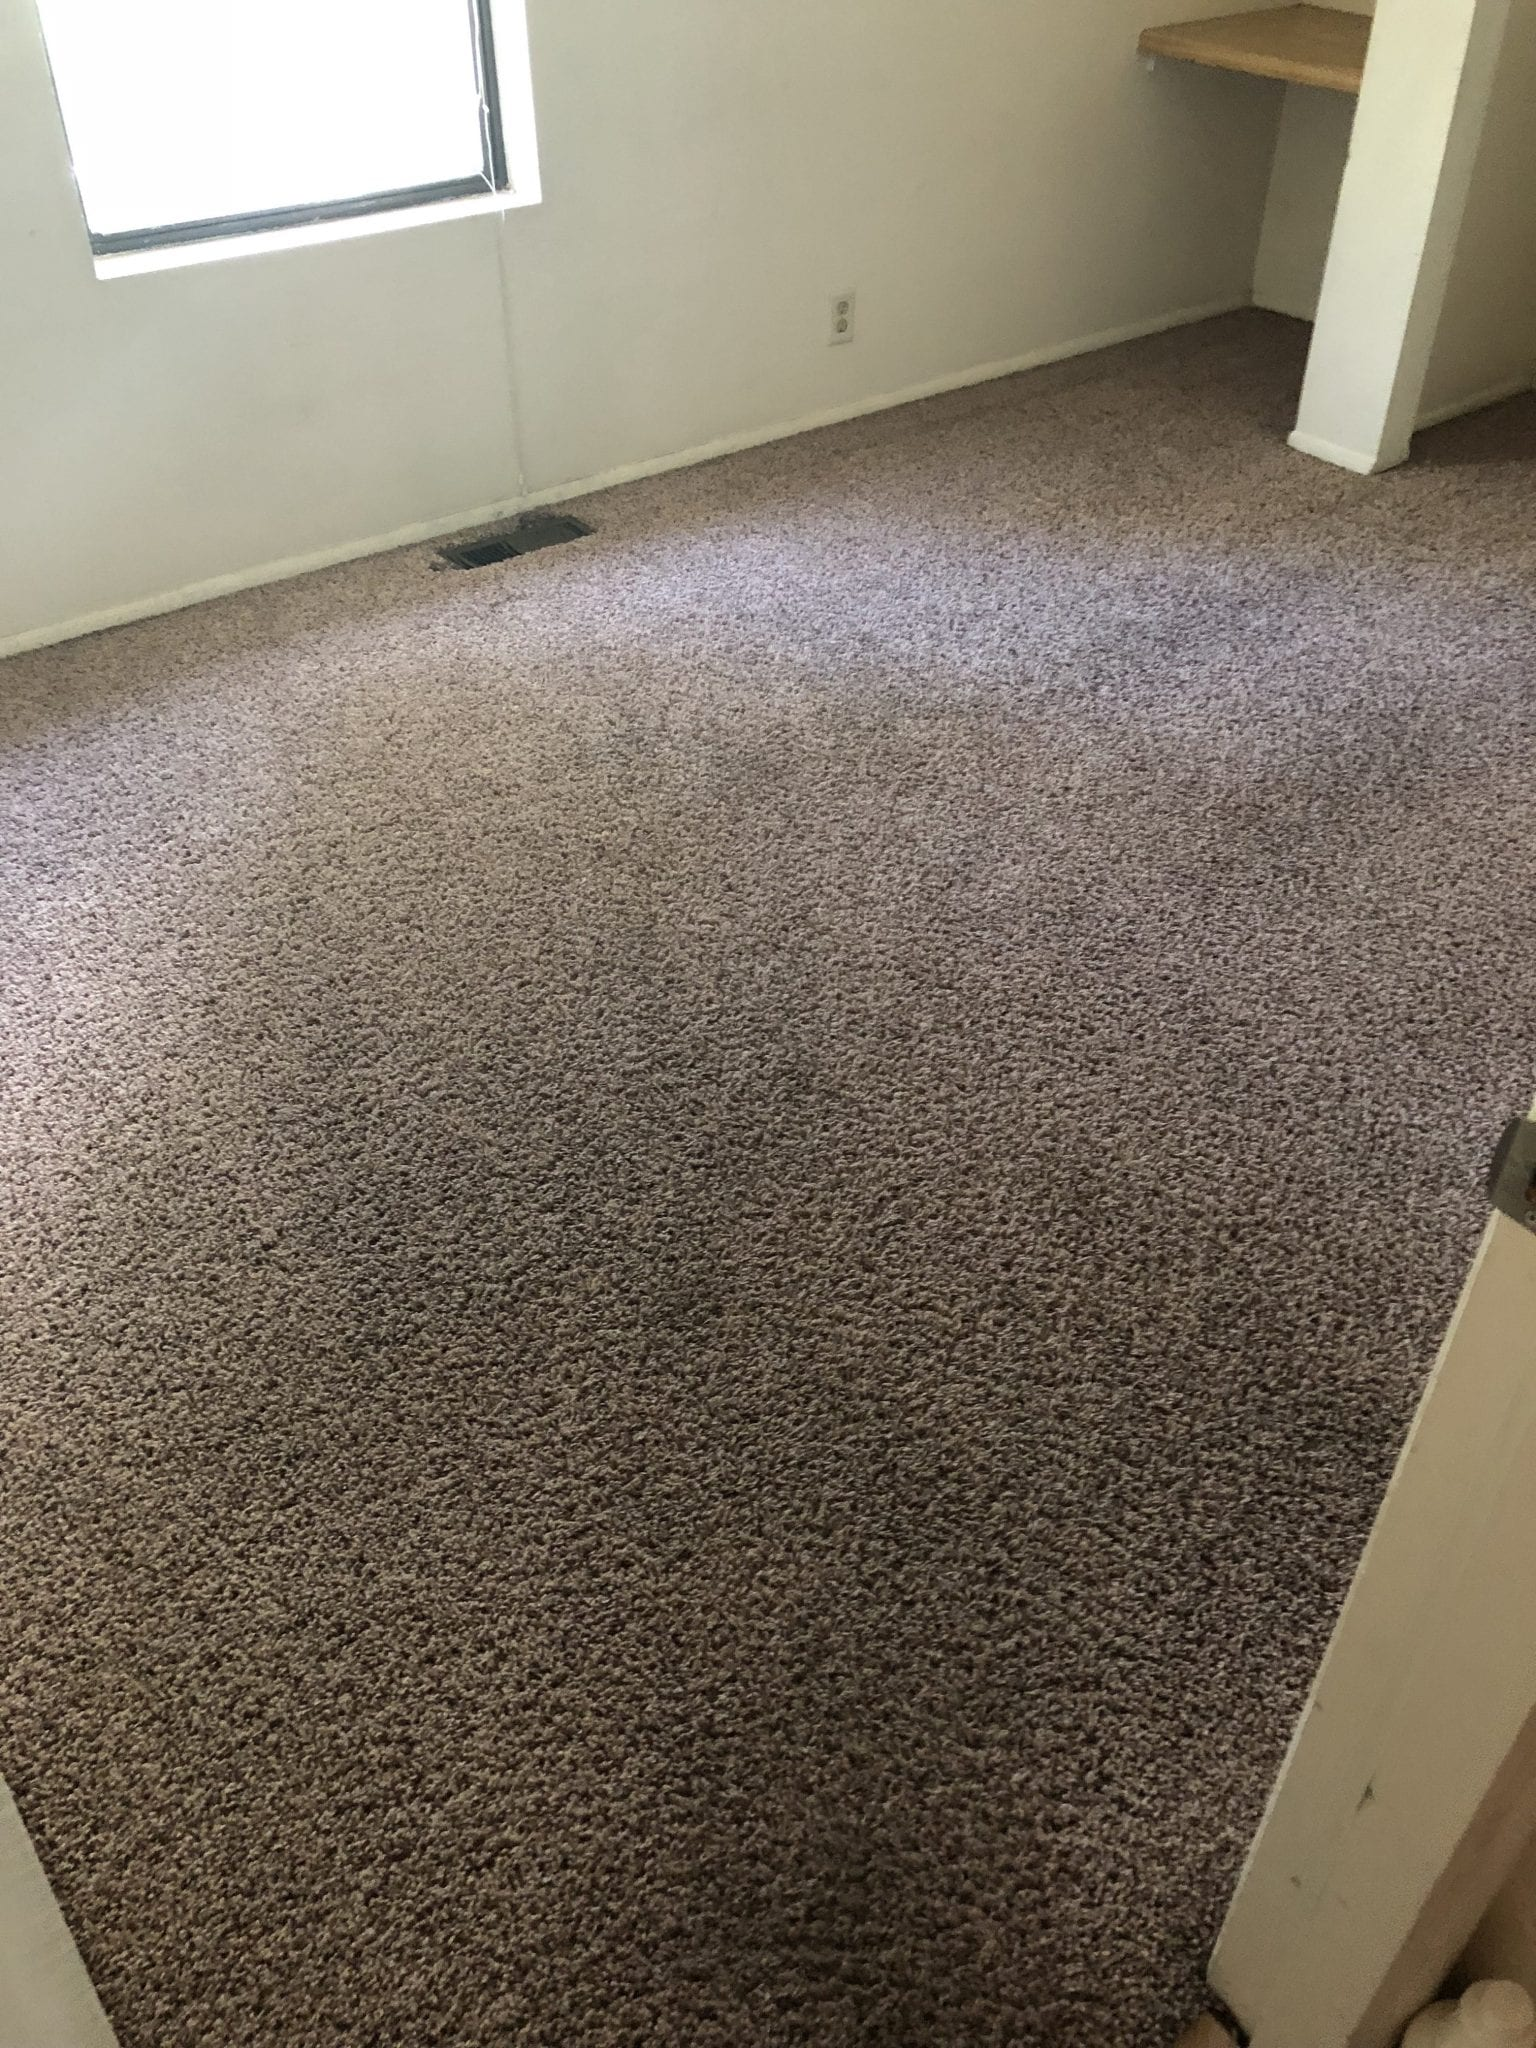 Carpet Cleaning Flagstaff